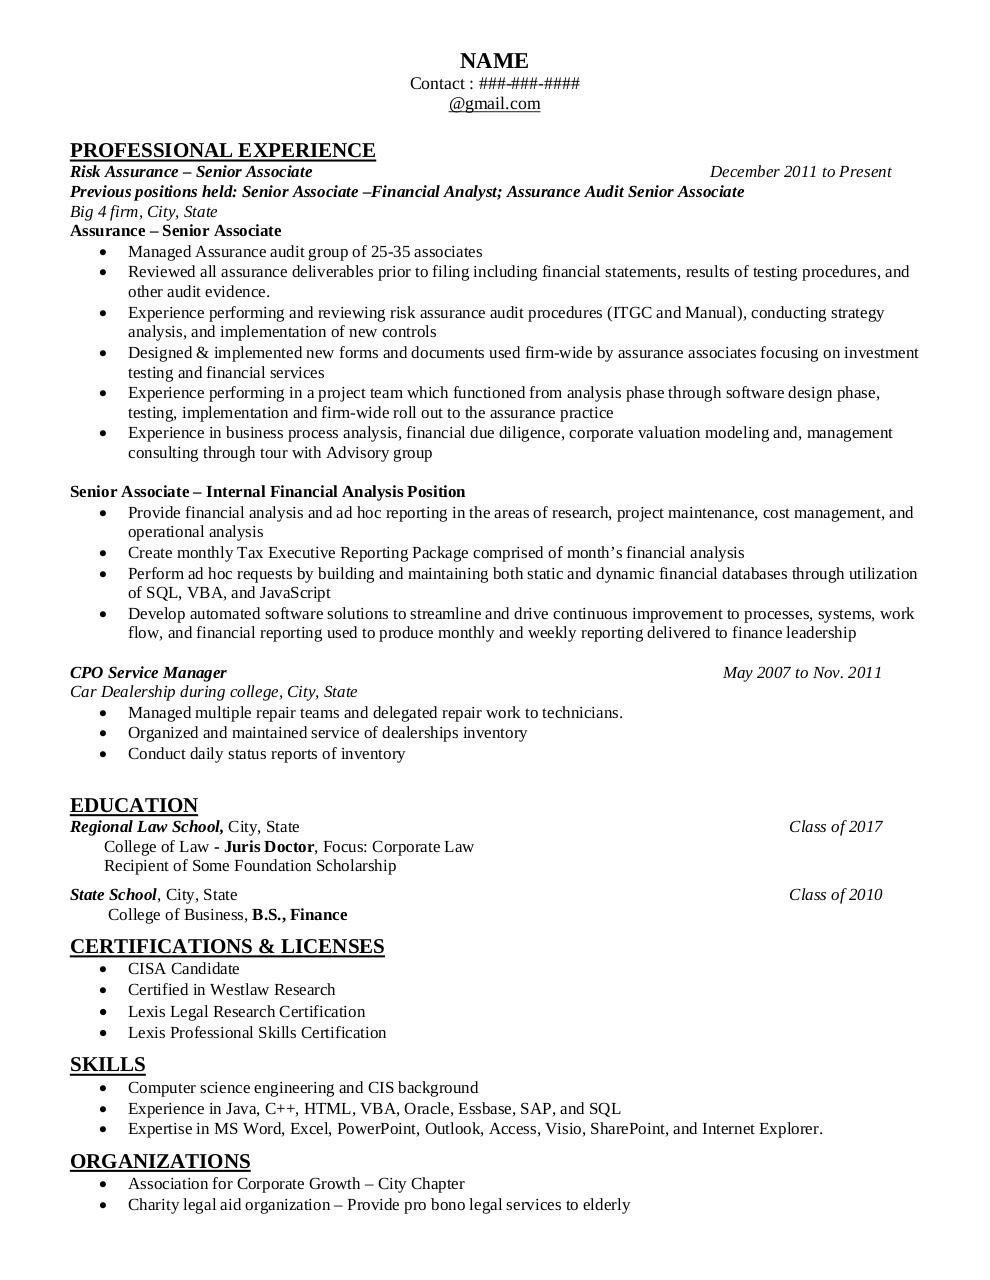 resume Wso Resume Review resume for upload to wso docx by dfichtman001 pdf pdf